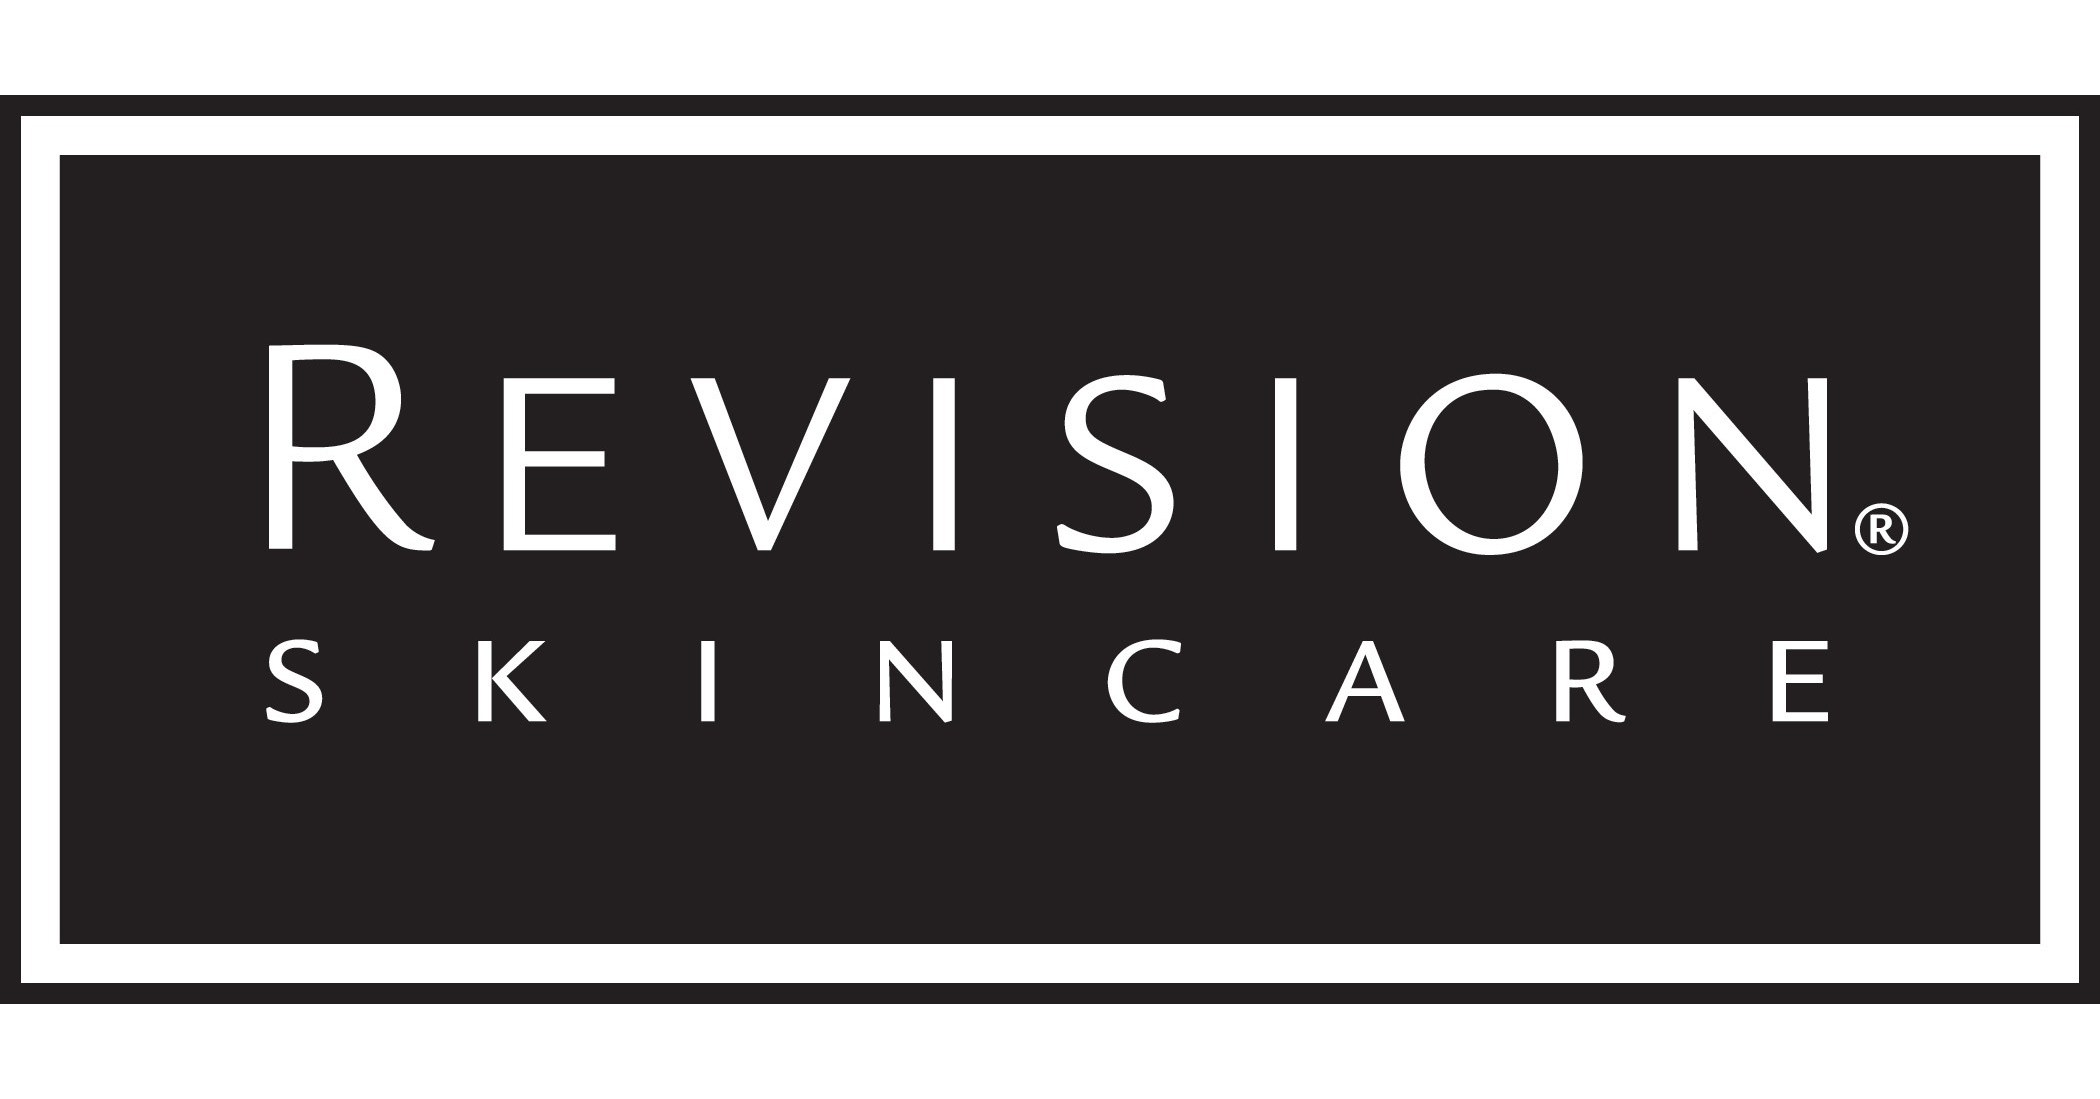 Maria Carell Named Chief Executive Officer Revision Skincare Llc And Goodier Cosmetics Llc